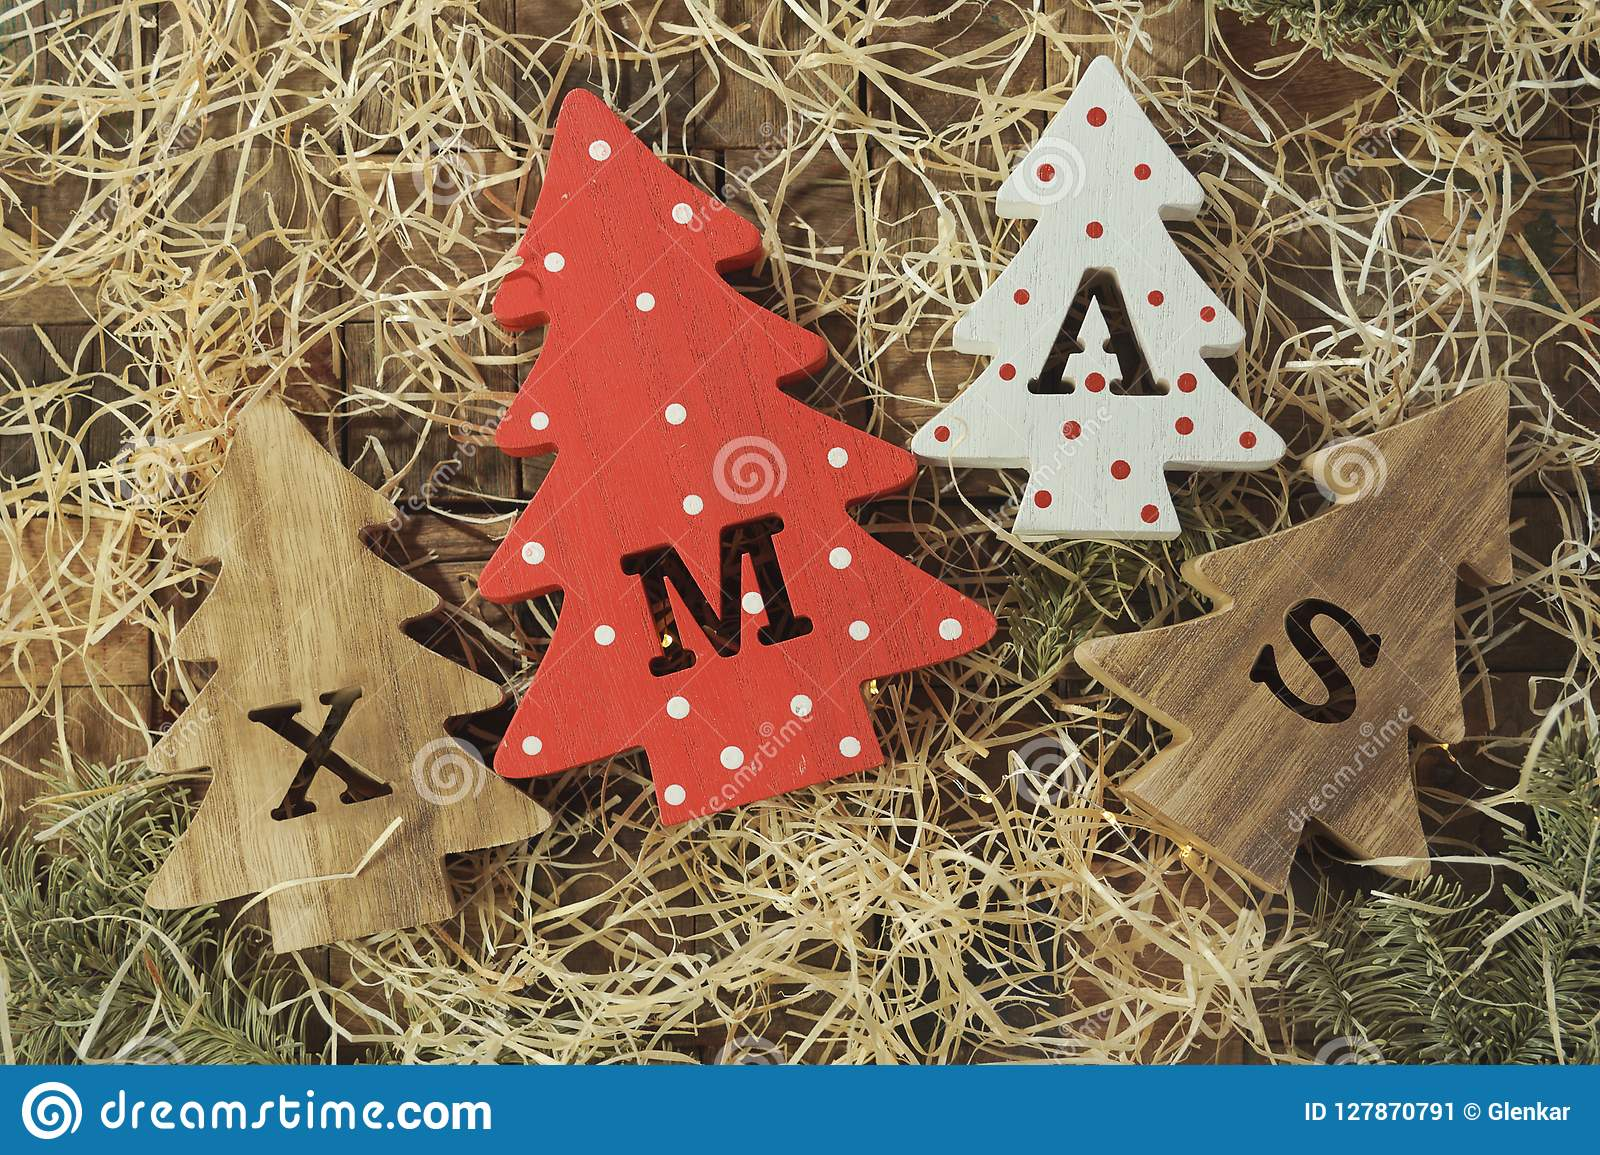 Four Decorative Wooden Christmas Trees With Carved Letters Xmas And Delicacy In The Form Of A Small Bones For Pets Top View Stock Image Image Of Composition Brown 127870791